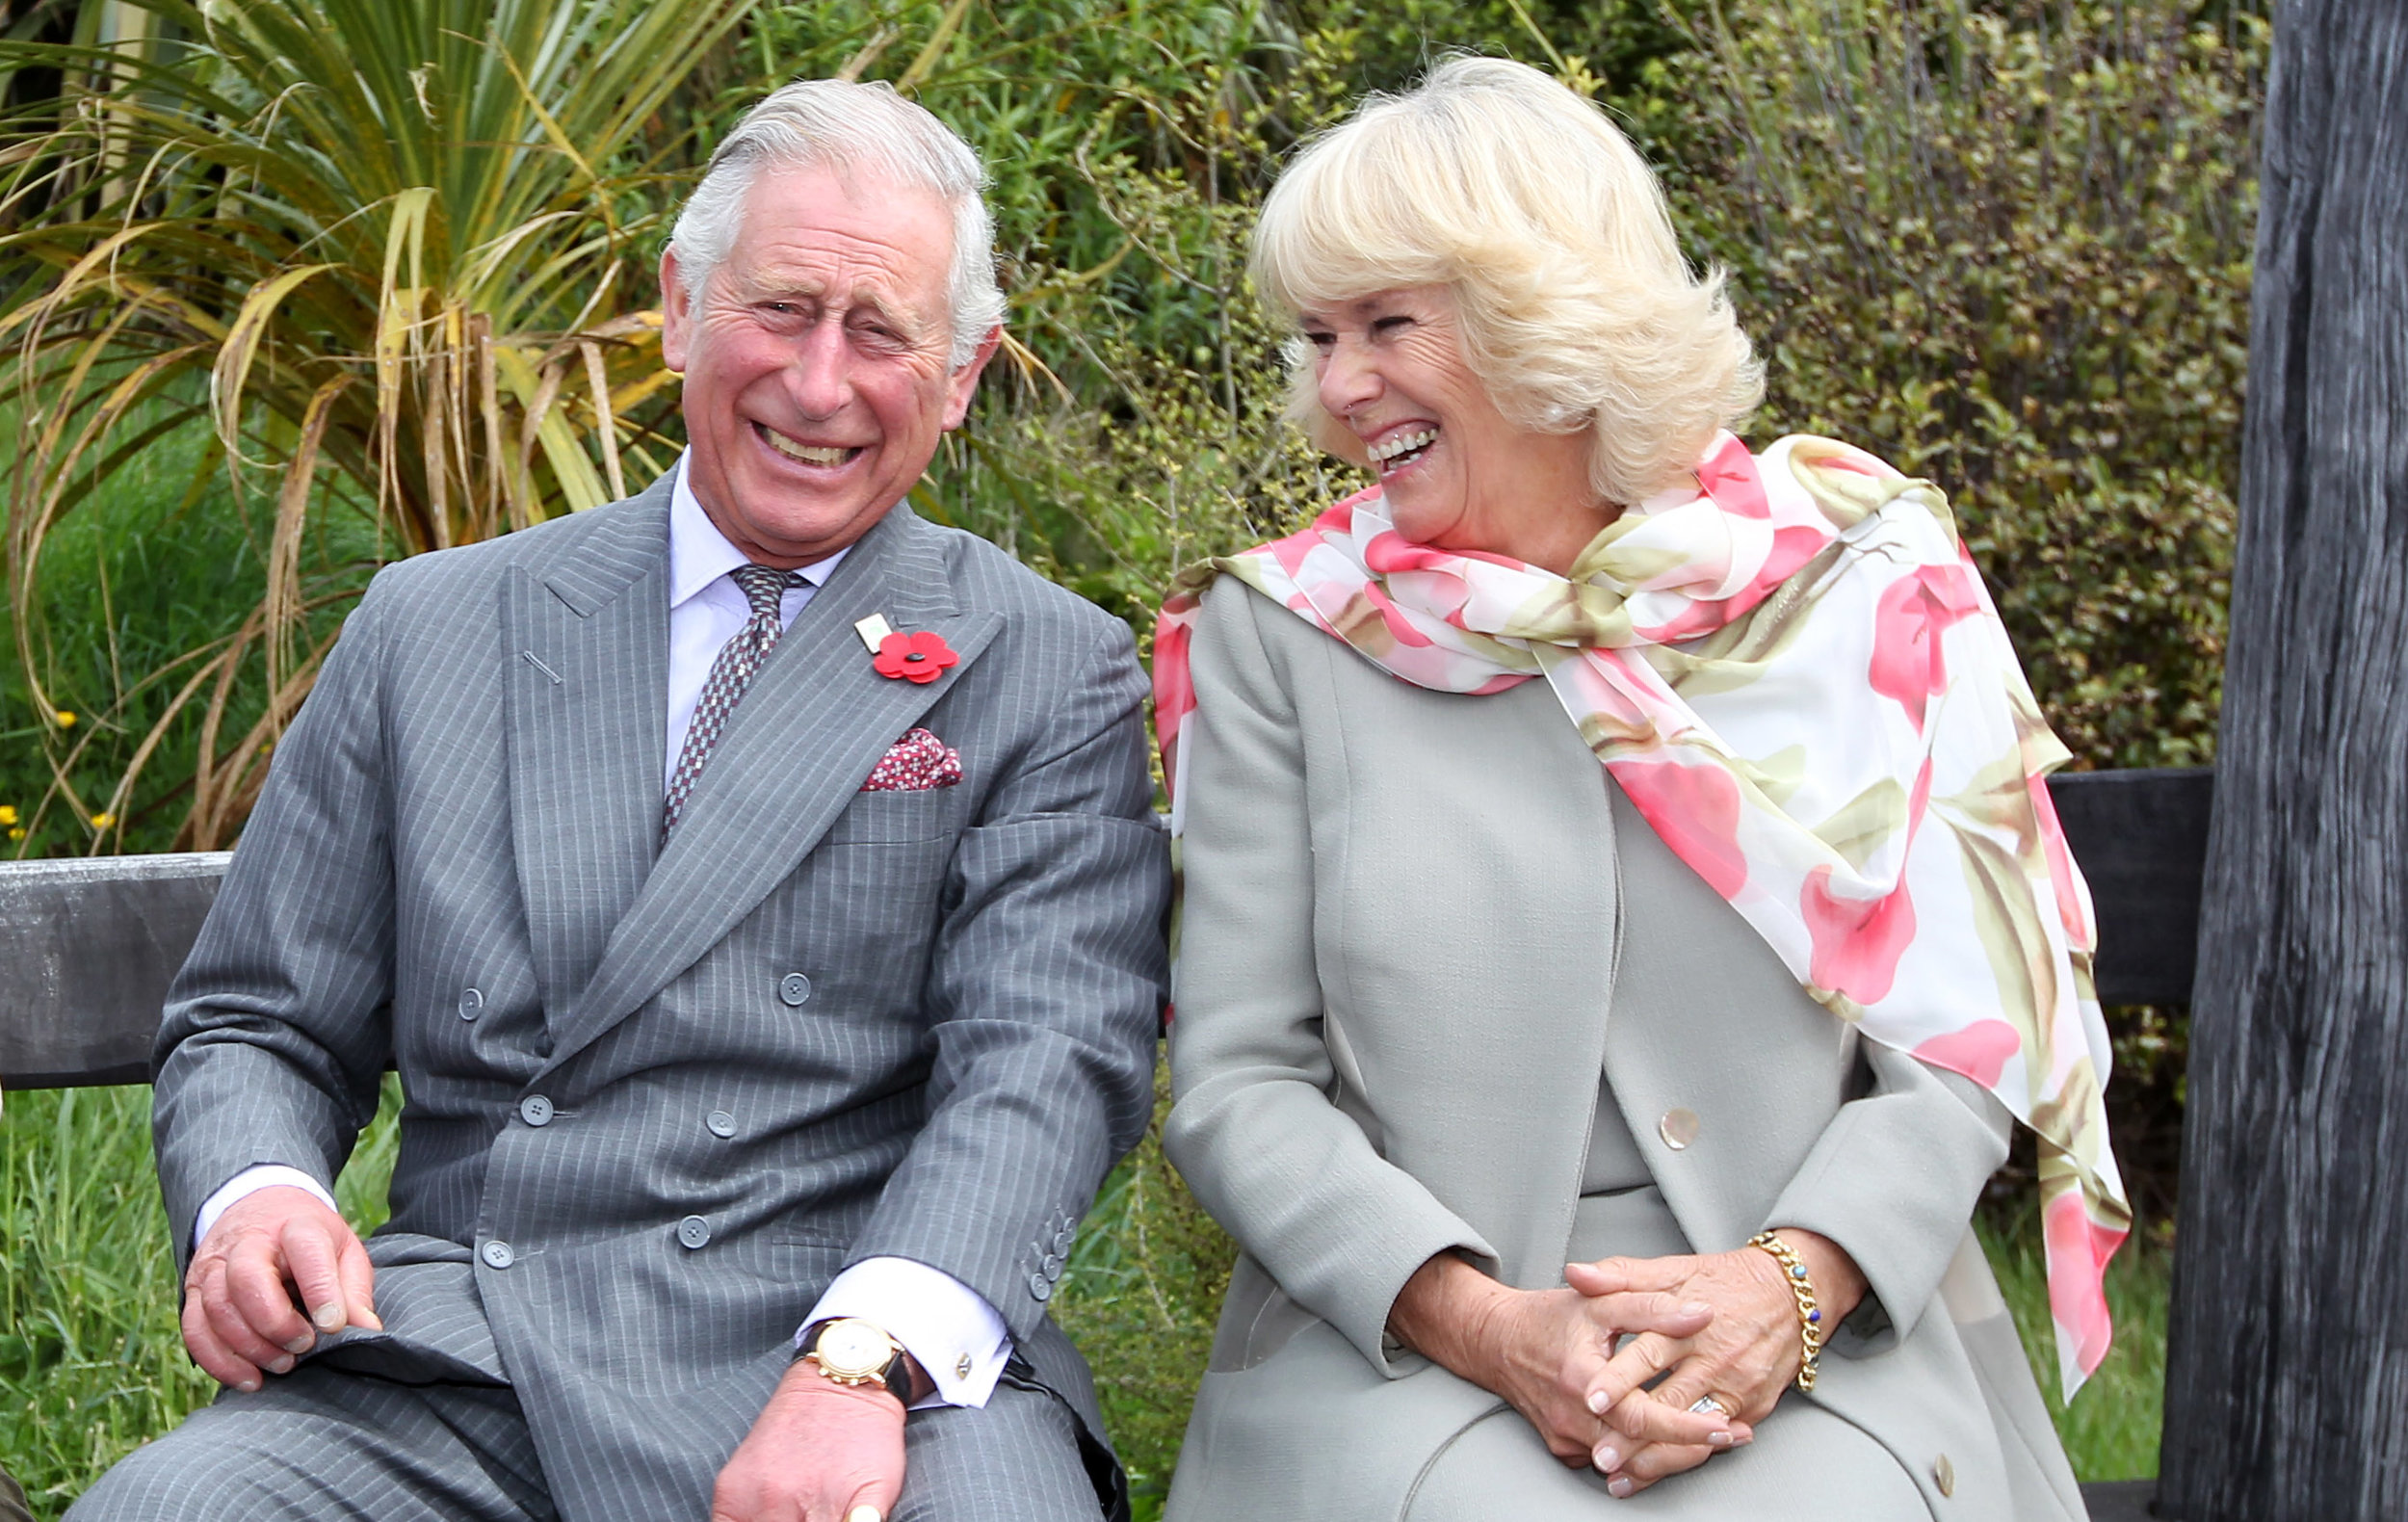 The Prince of Wales and Duchess of Cornwall Clarence House London SW1A 1BA England   Foto: Getty Images